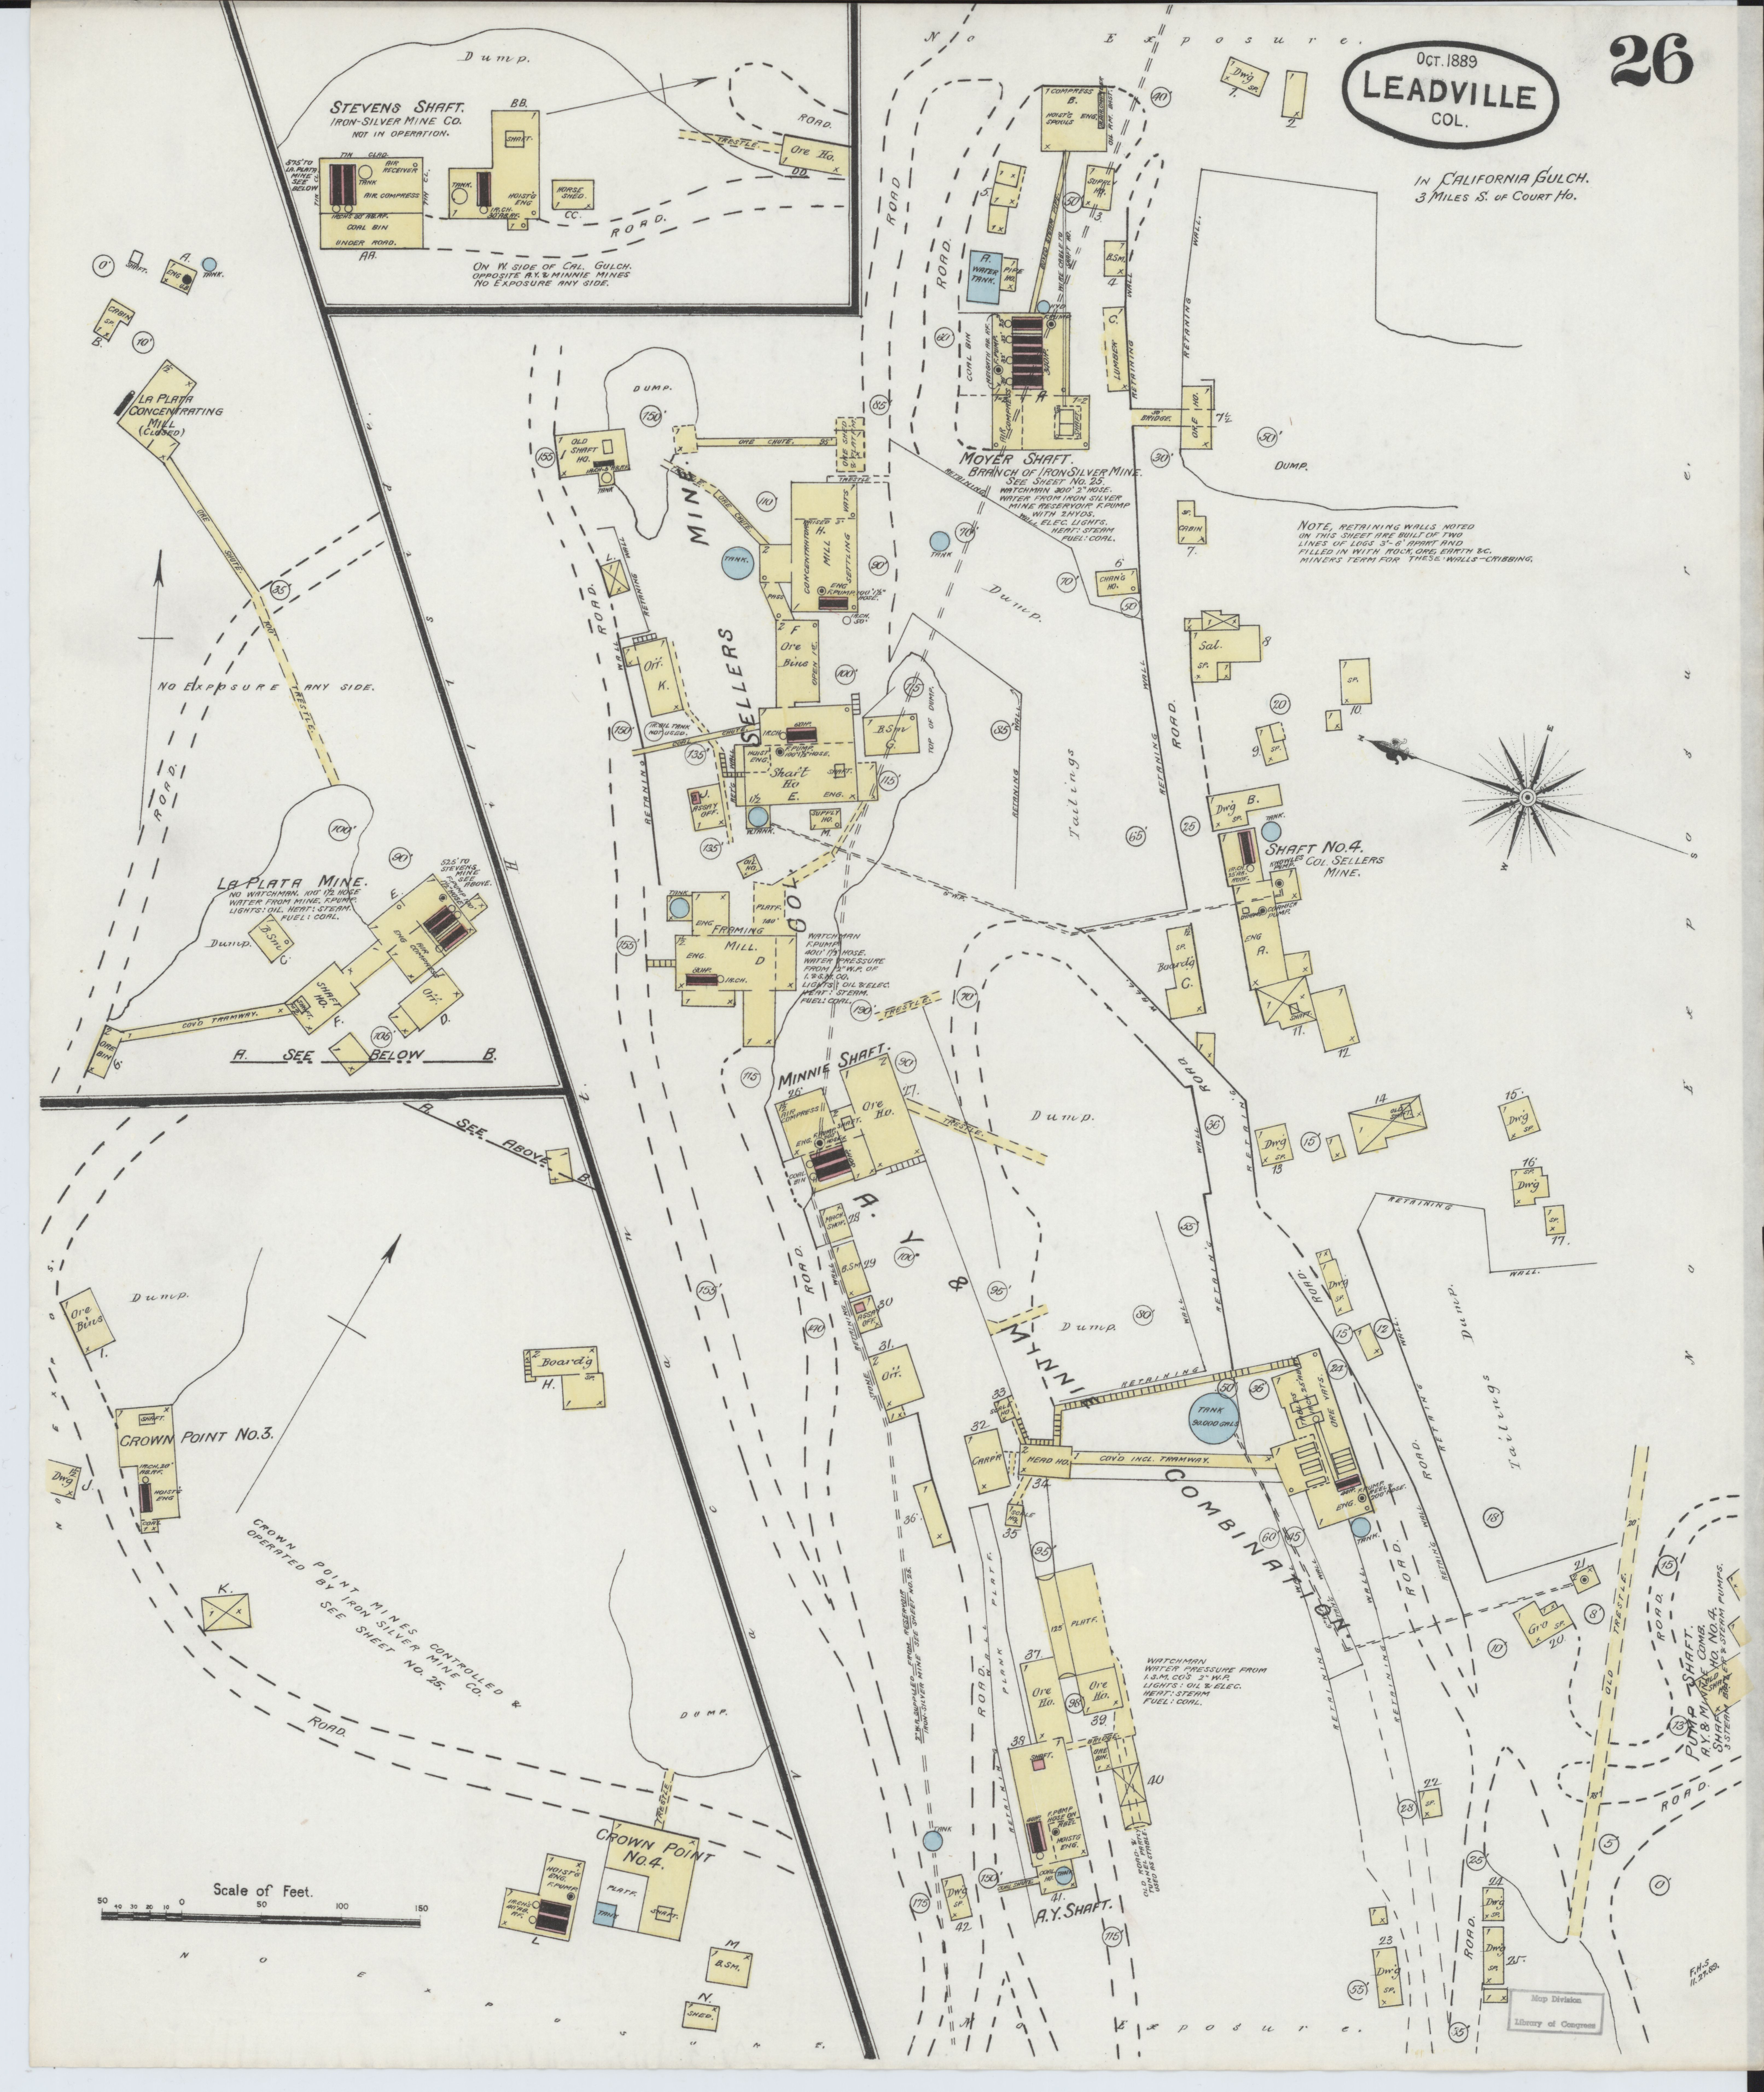 Lake County Colorado Map.File Sanborn Fire Insurance Map From Leadville Lake County